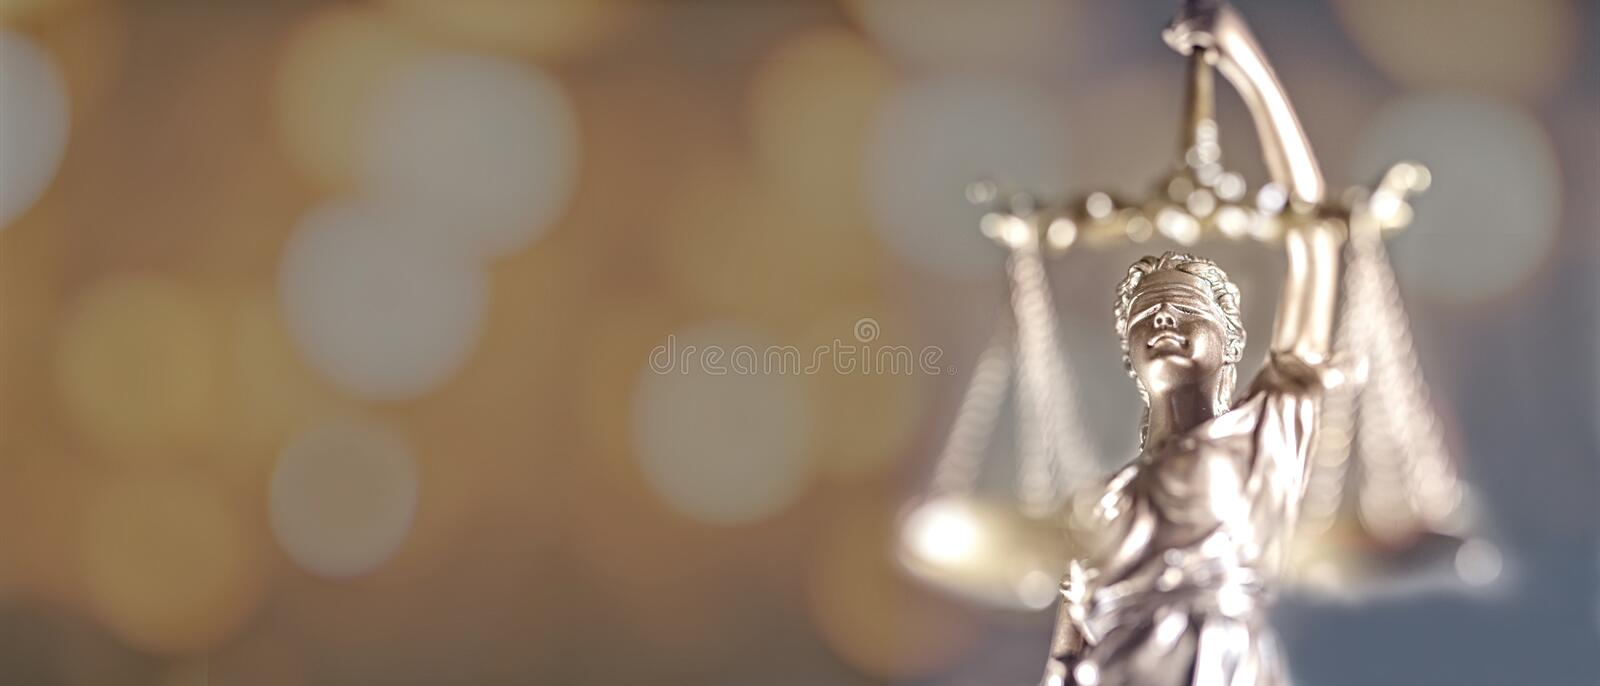 Statue Of Lady Justice. Closeup of golden lady Justice statue - focus on foreground with bokeh background royalty free stock photography